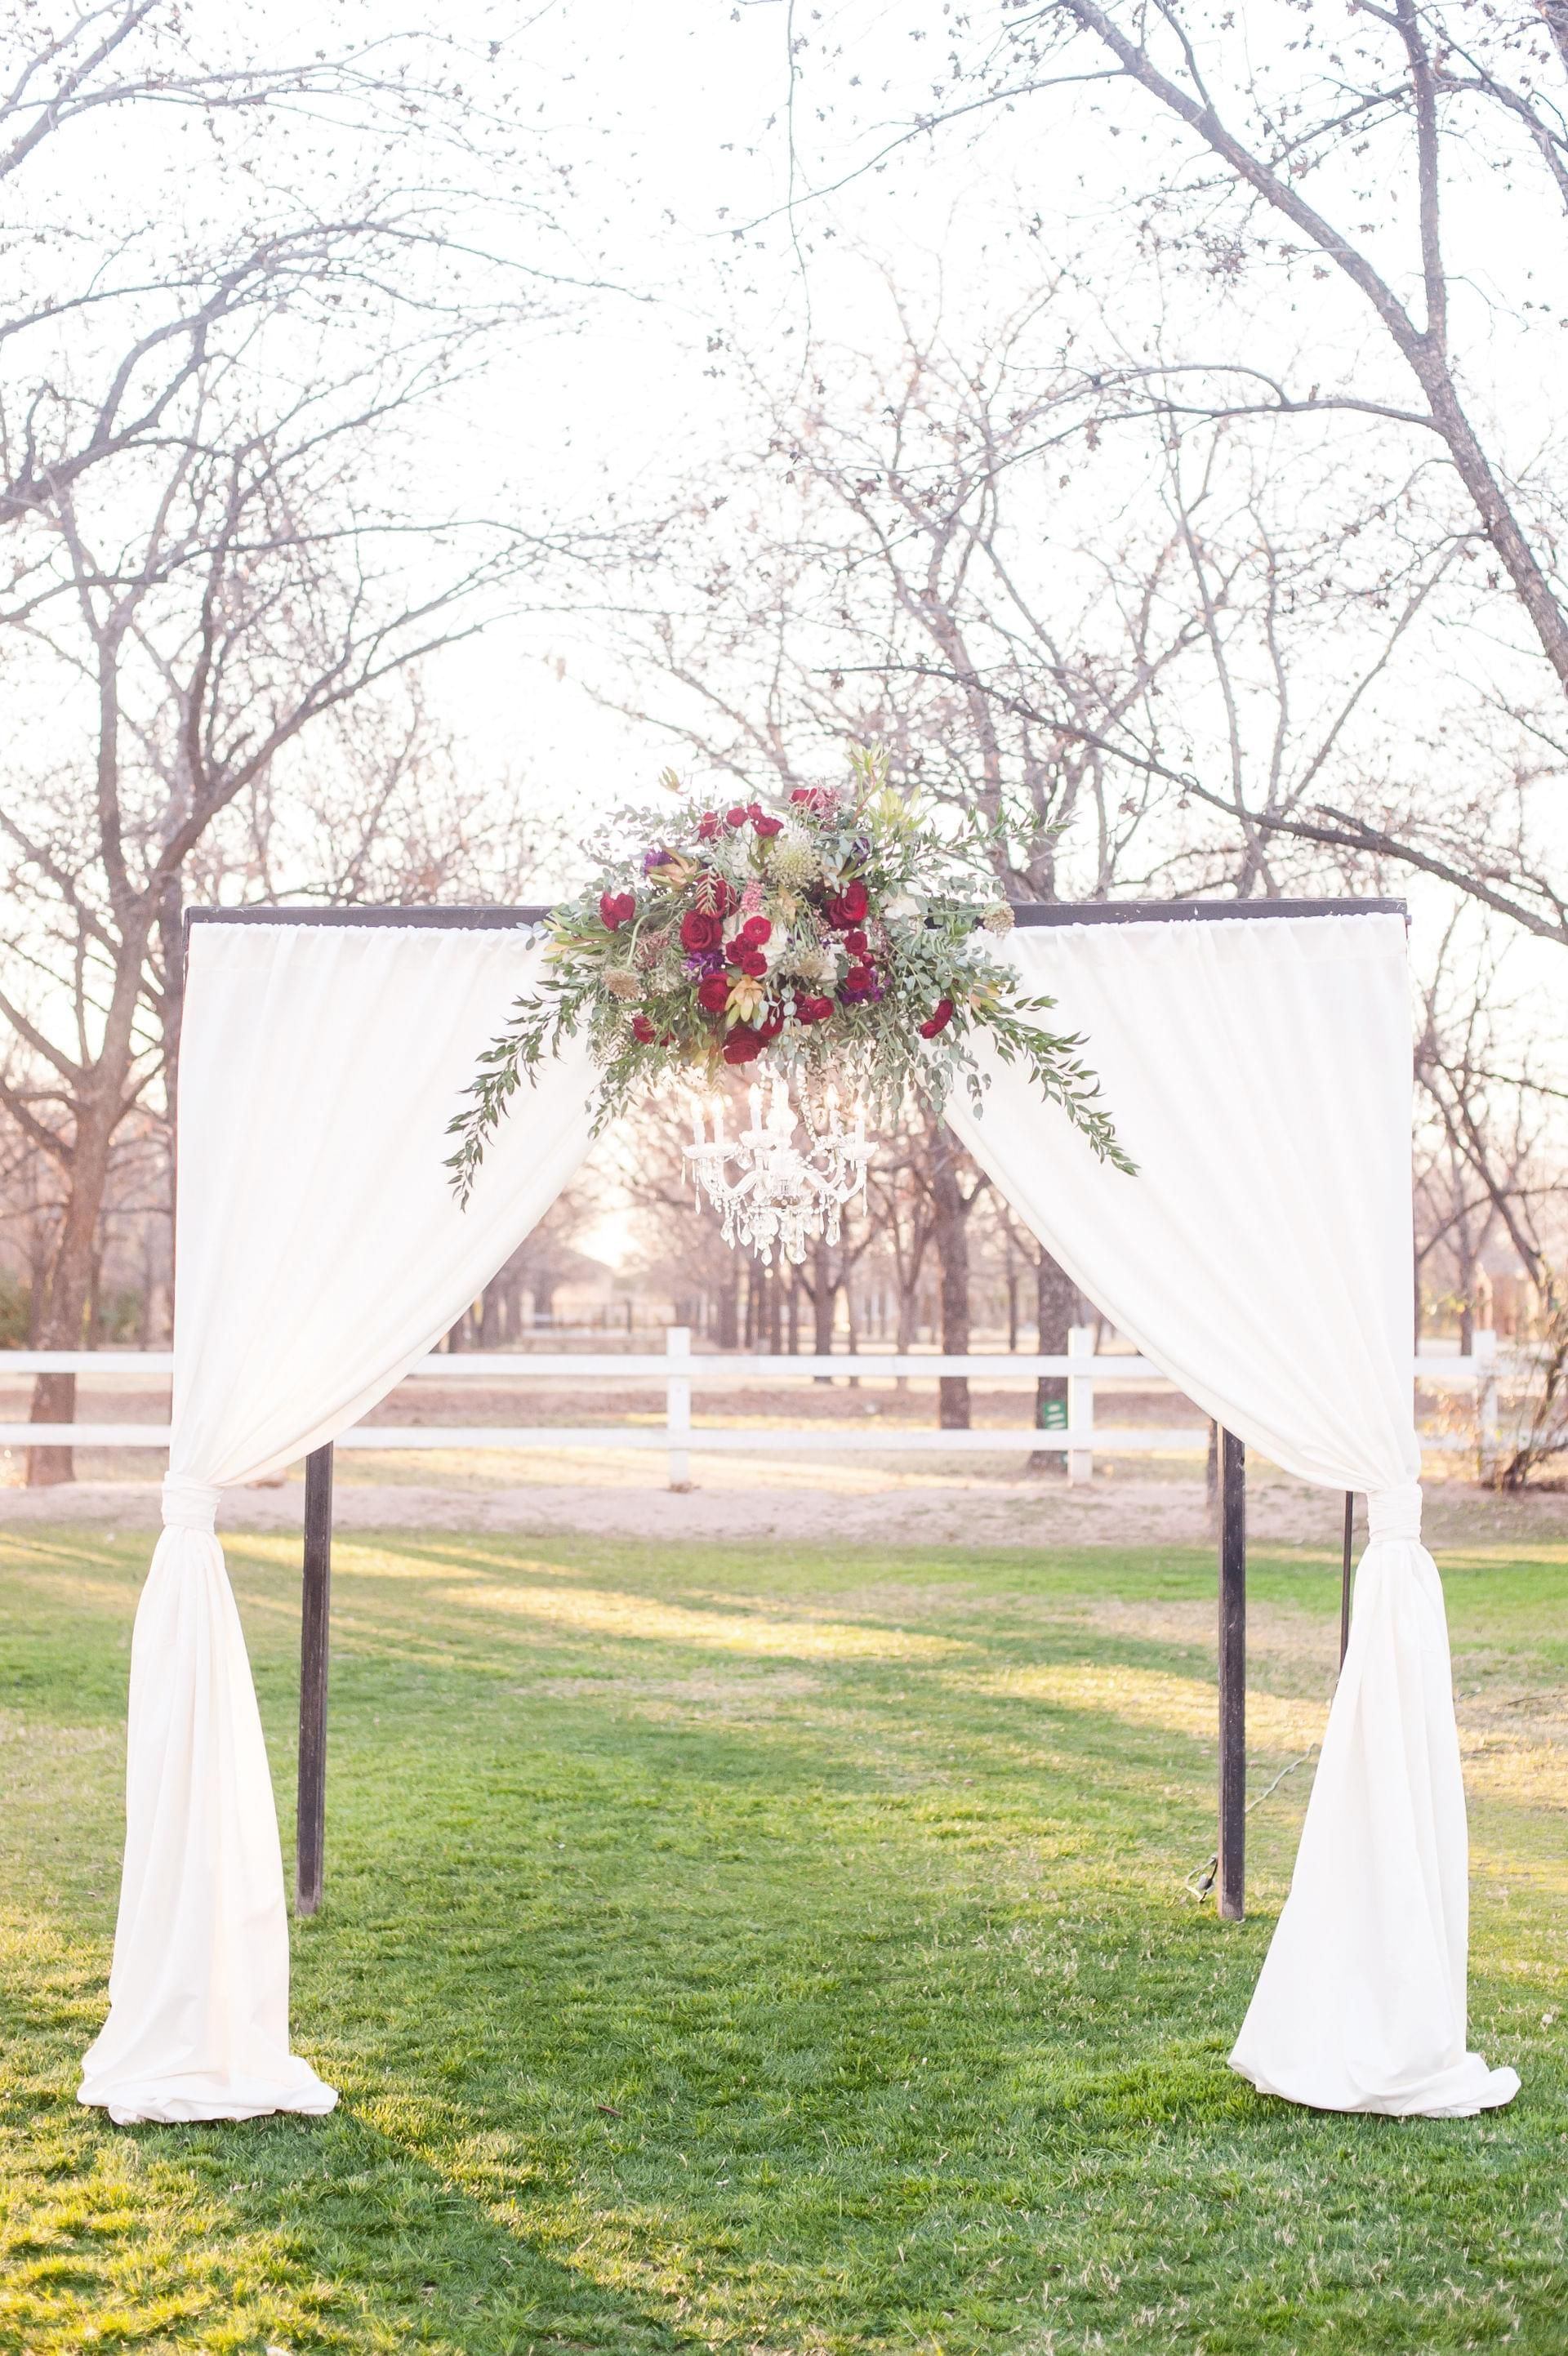 Romantic Outdoor Wedding Ceremony Arbor Ruby Red Flowers